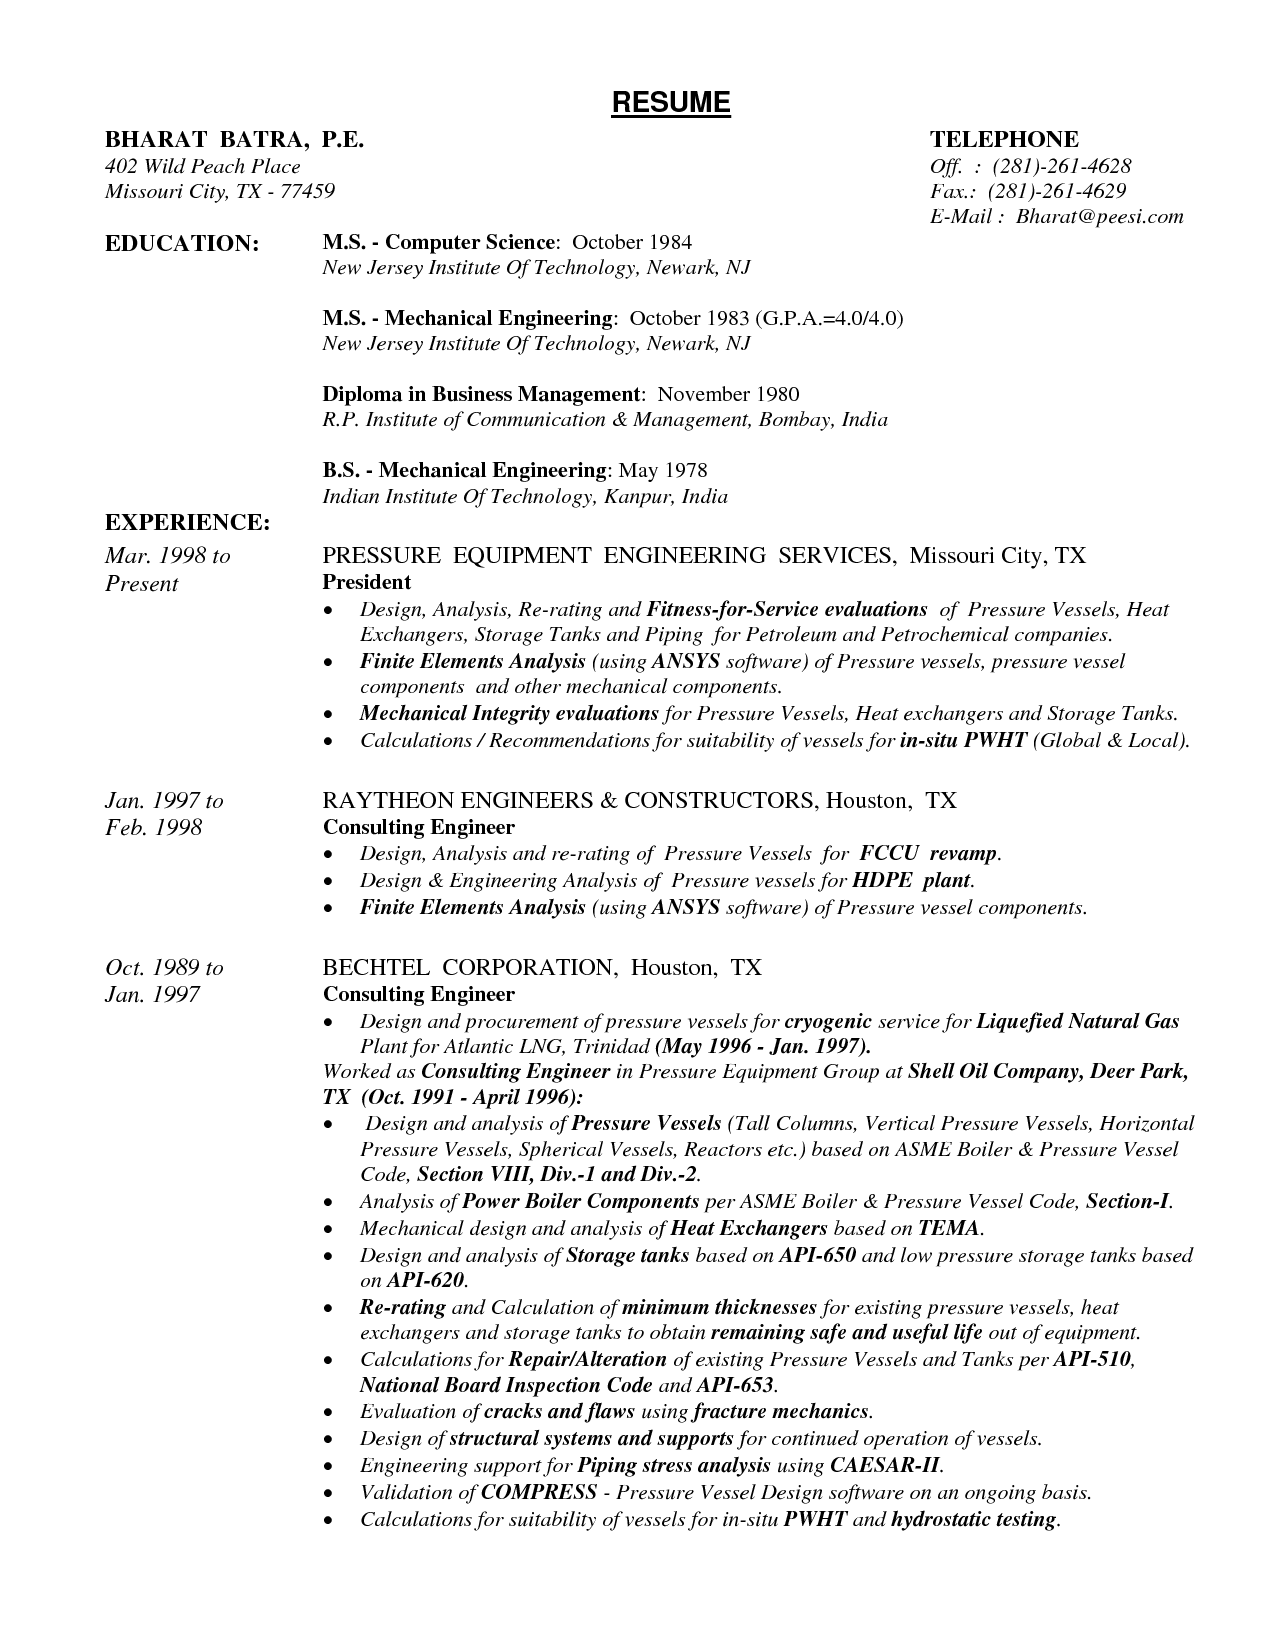 Computer Engineer Resume Mechanical Designer Resume Mechanical Engineer Technician  Jobs